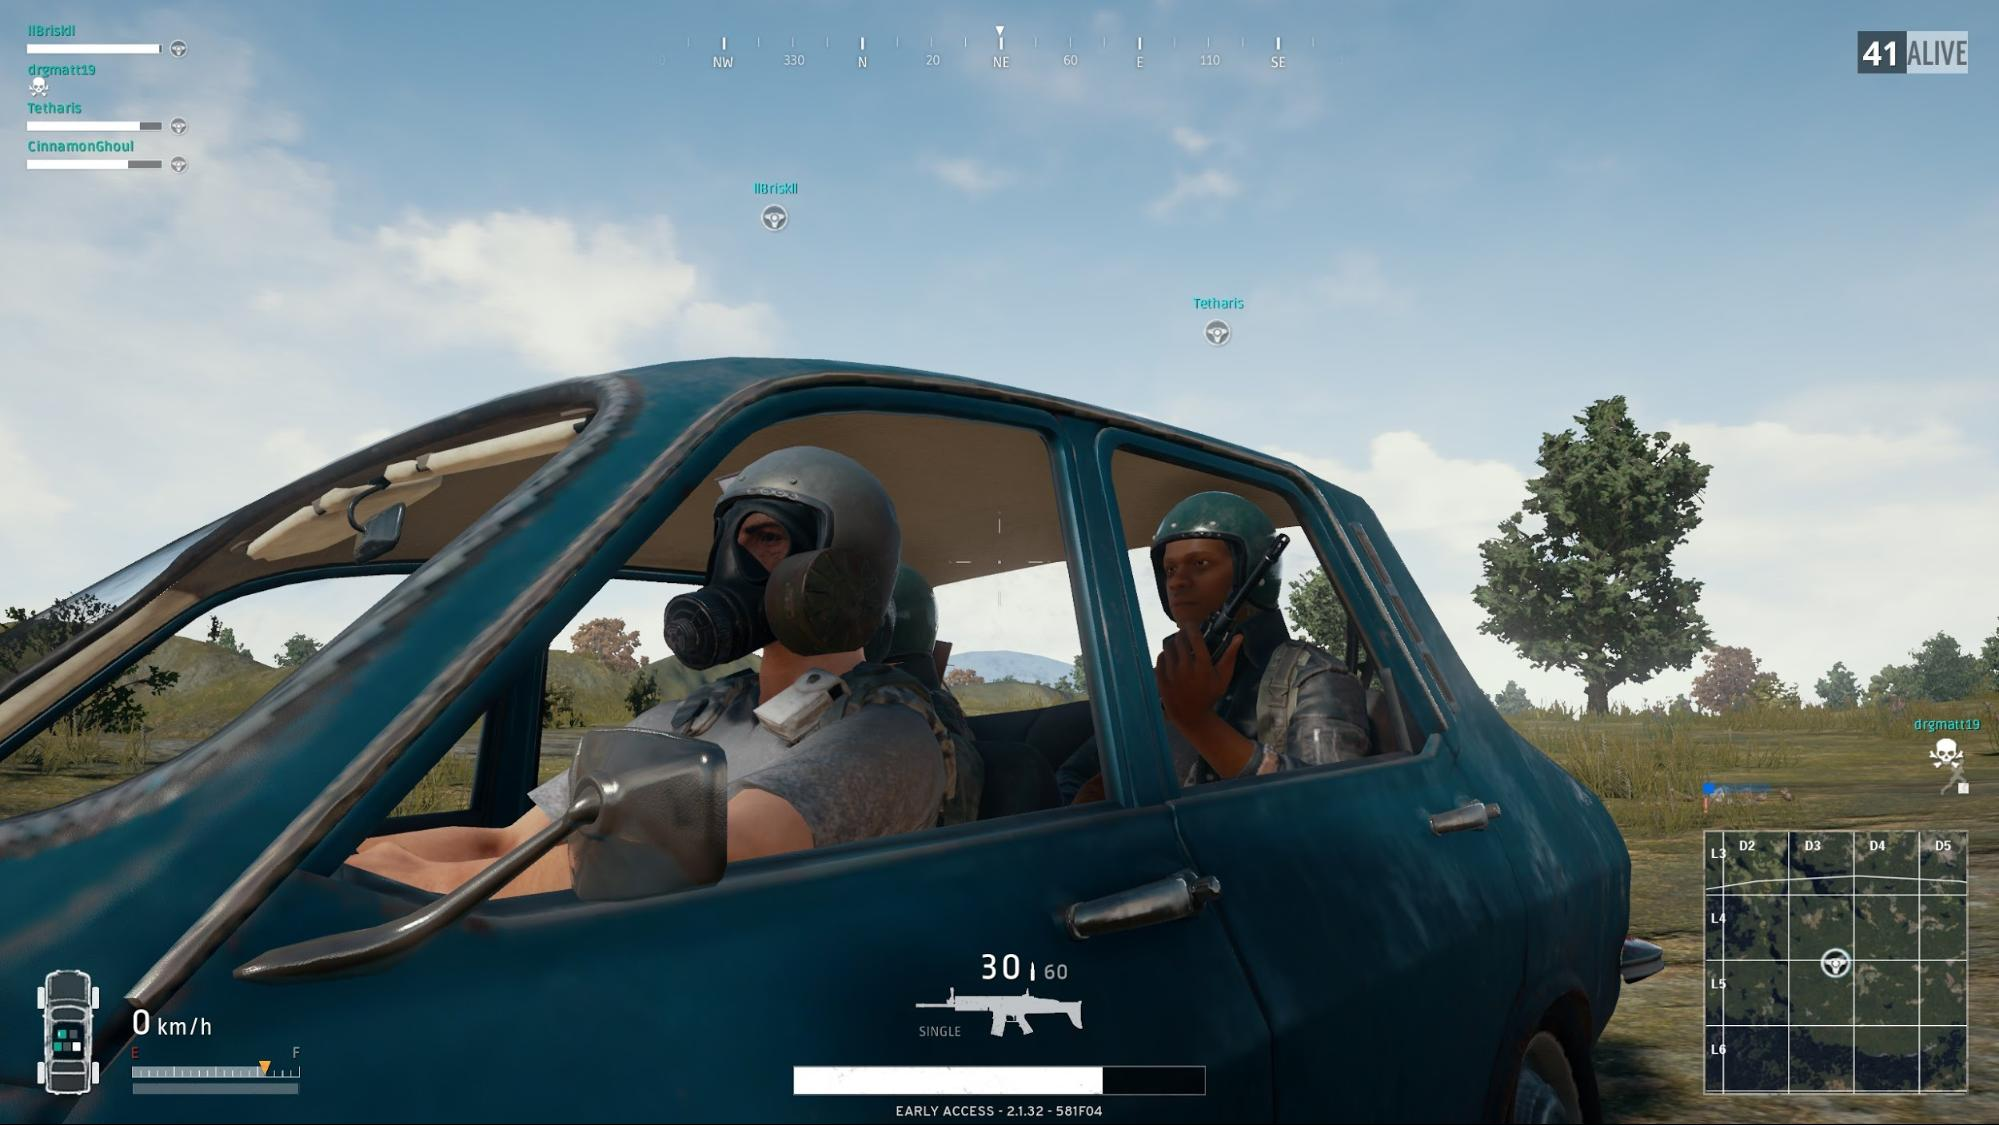 Another PUBG streamer has been banned, this time for taking